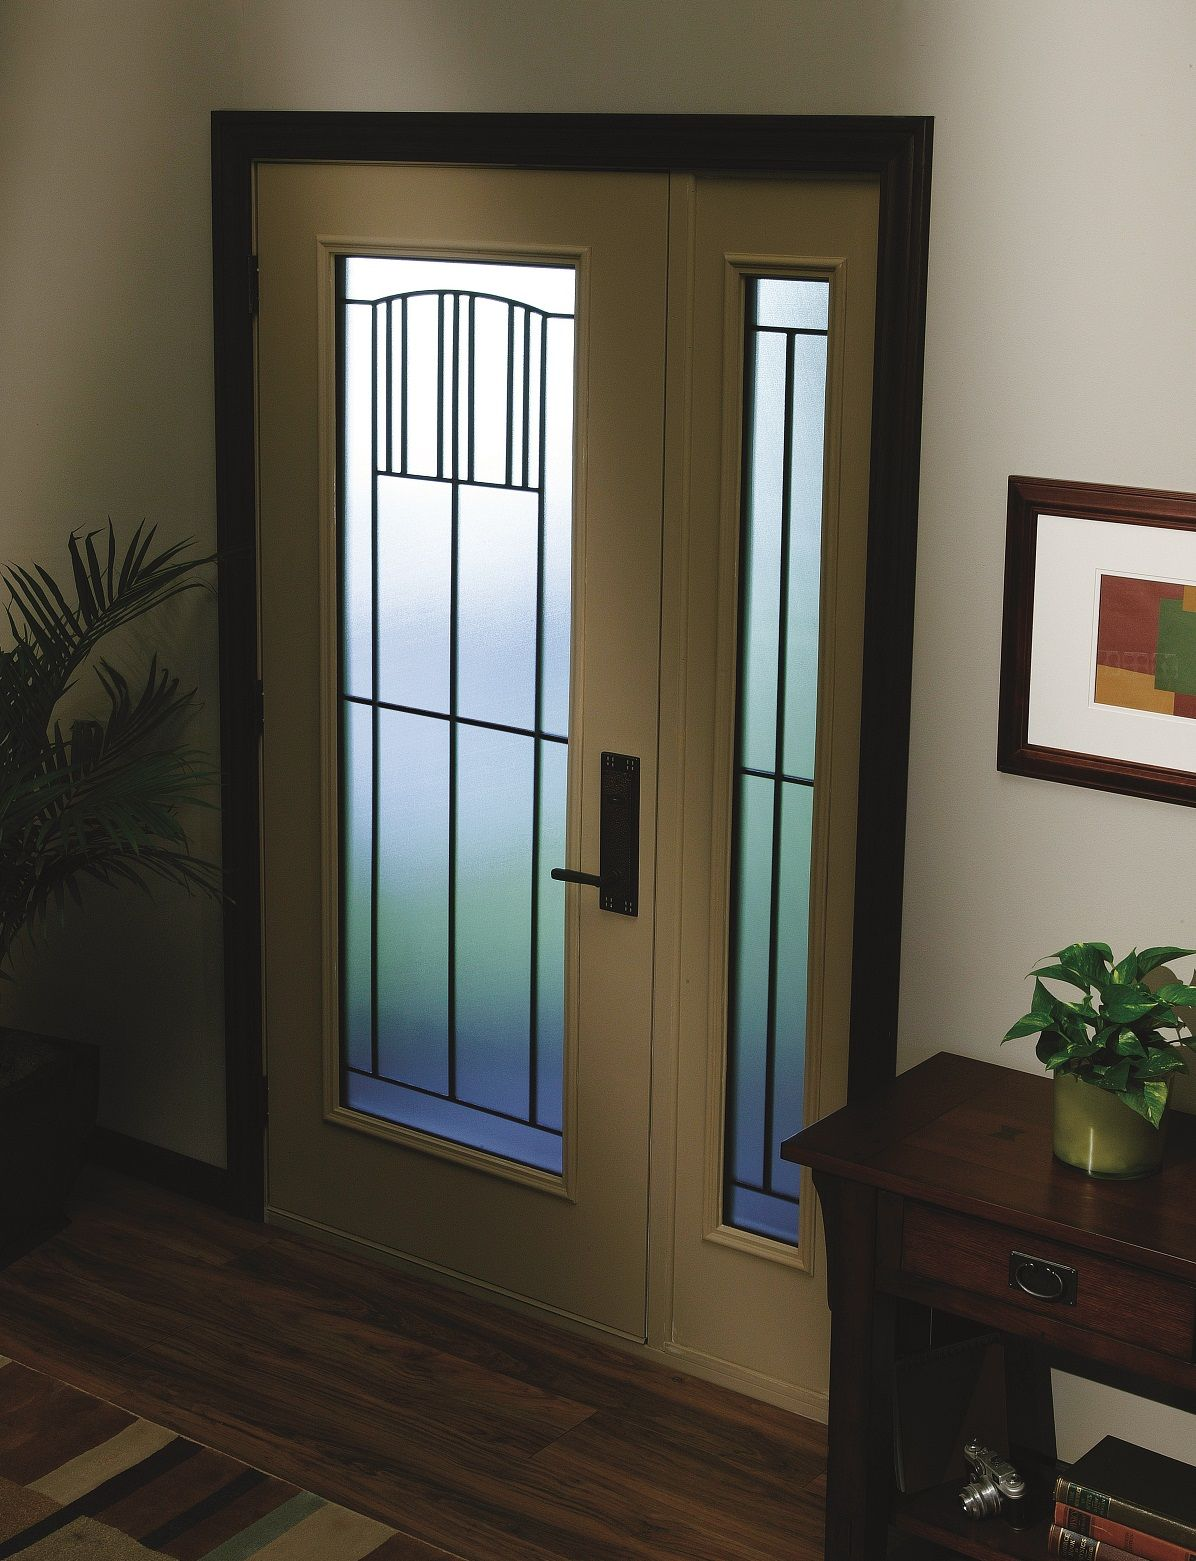 The Craftsman-inspired design of  Madison  door glass with its geometric pattern and & The Craftsman-inspired design of